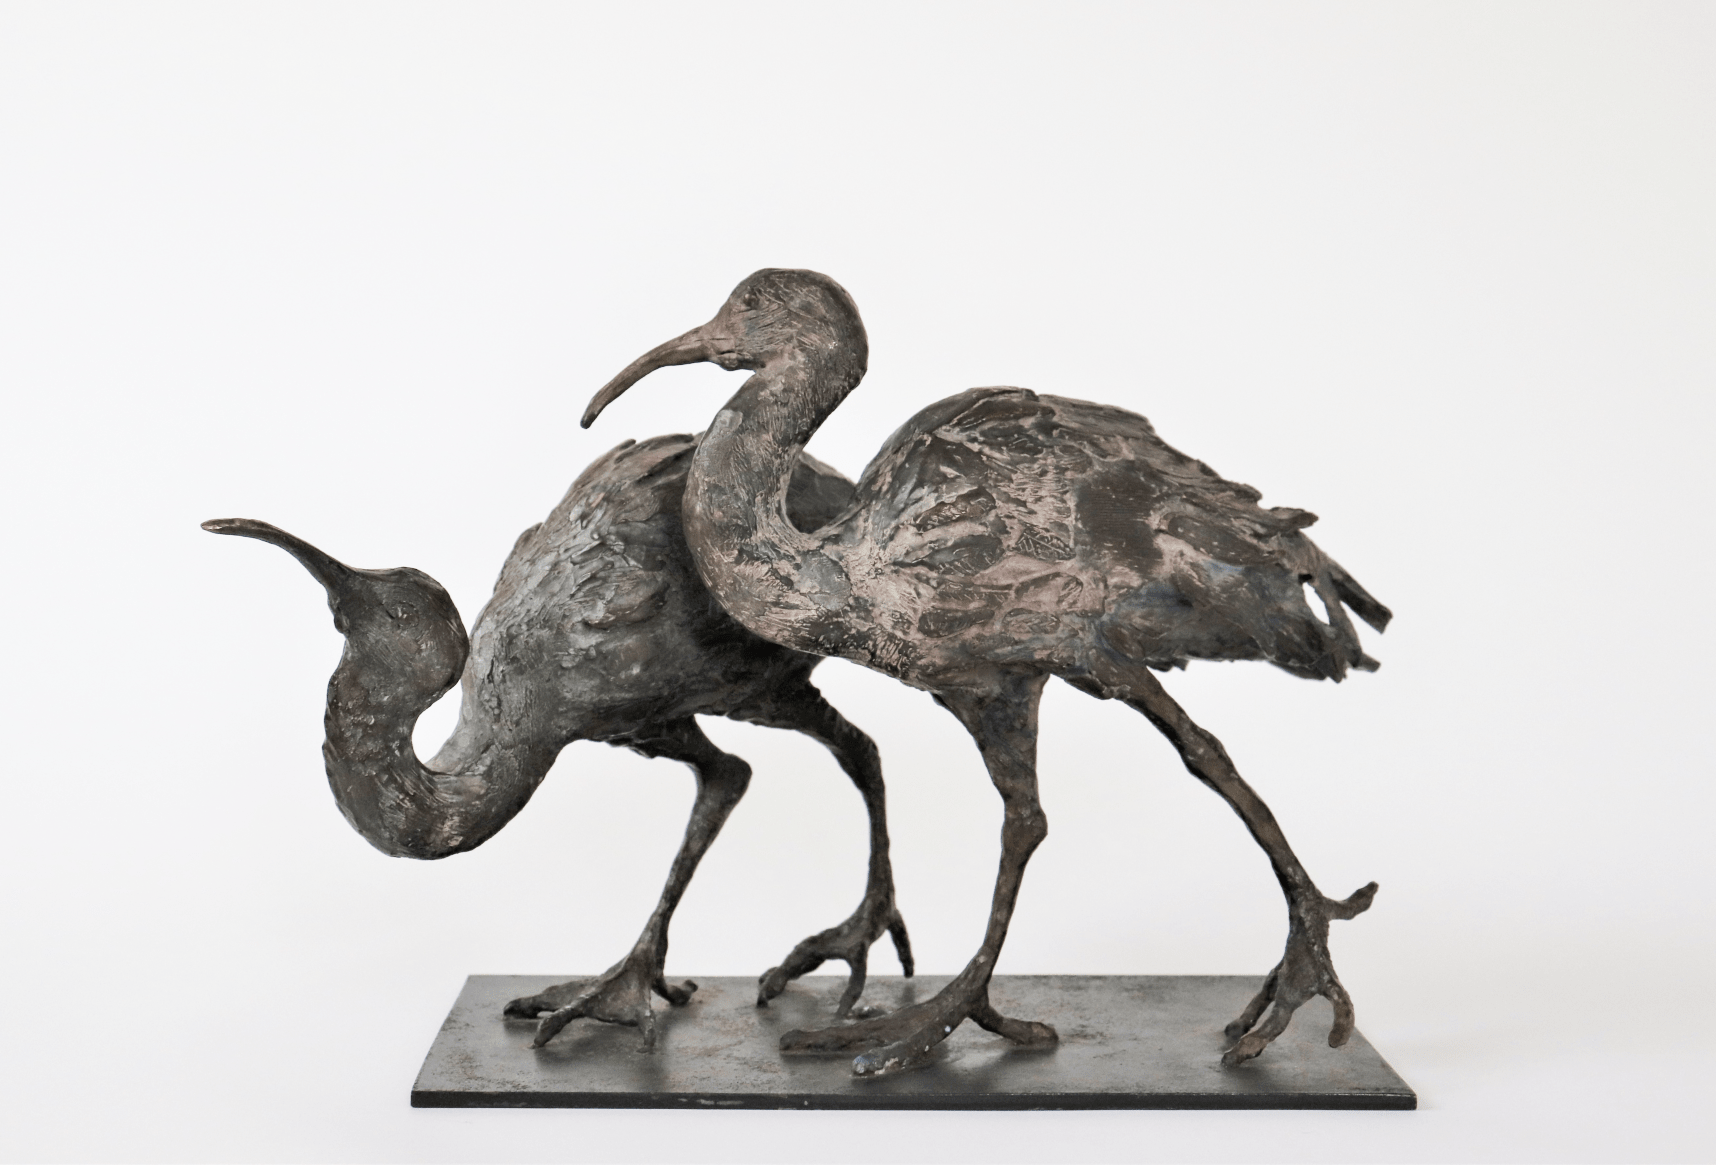 Deux Ibis,Florence Chésade,Sculpture contemporaine